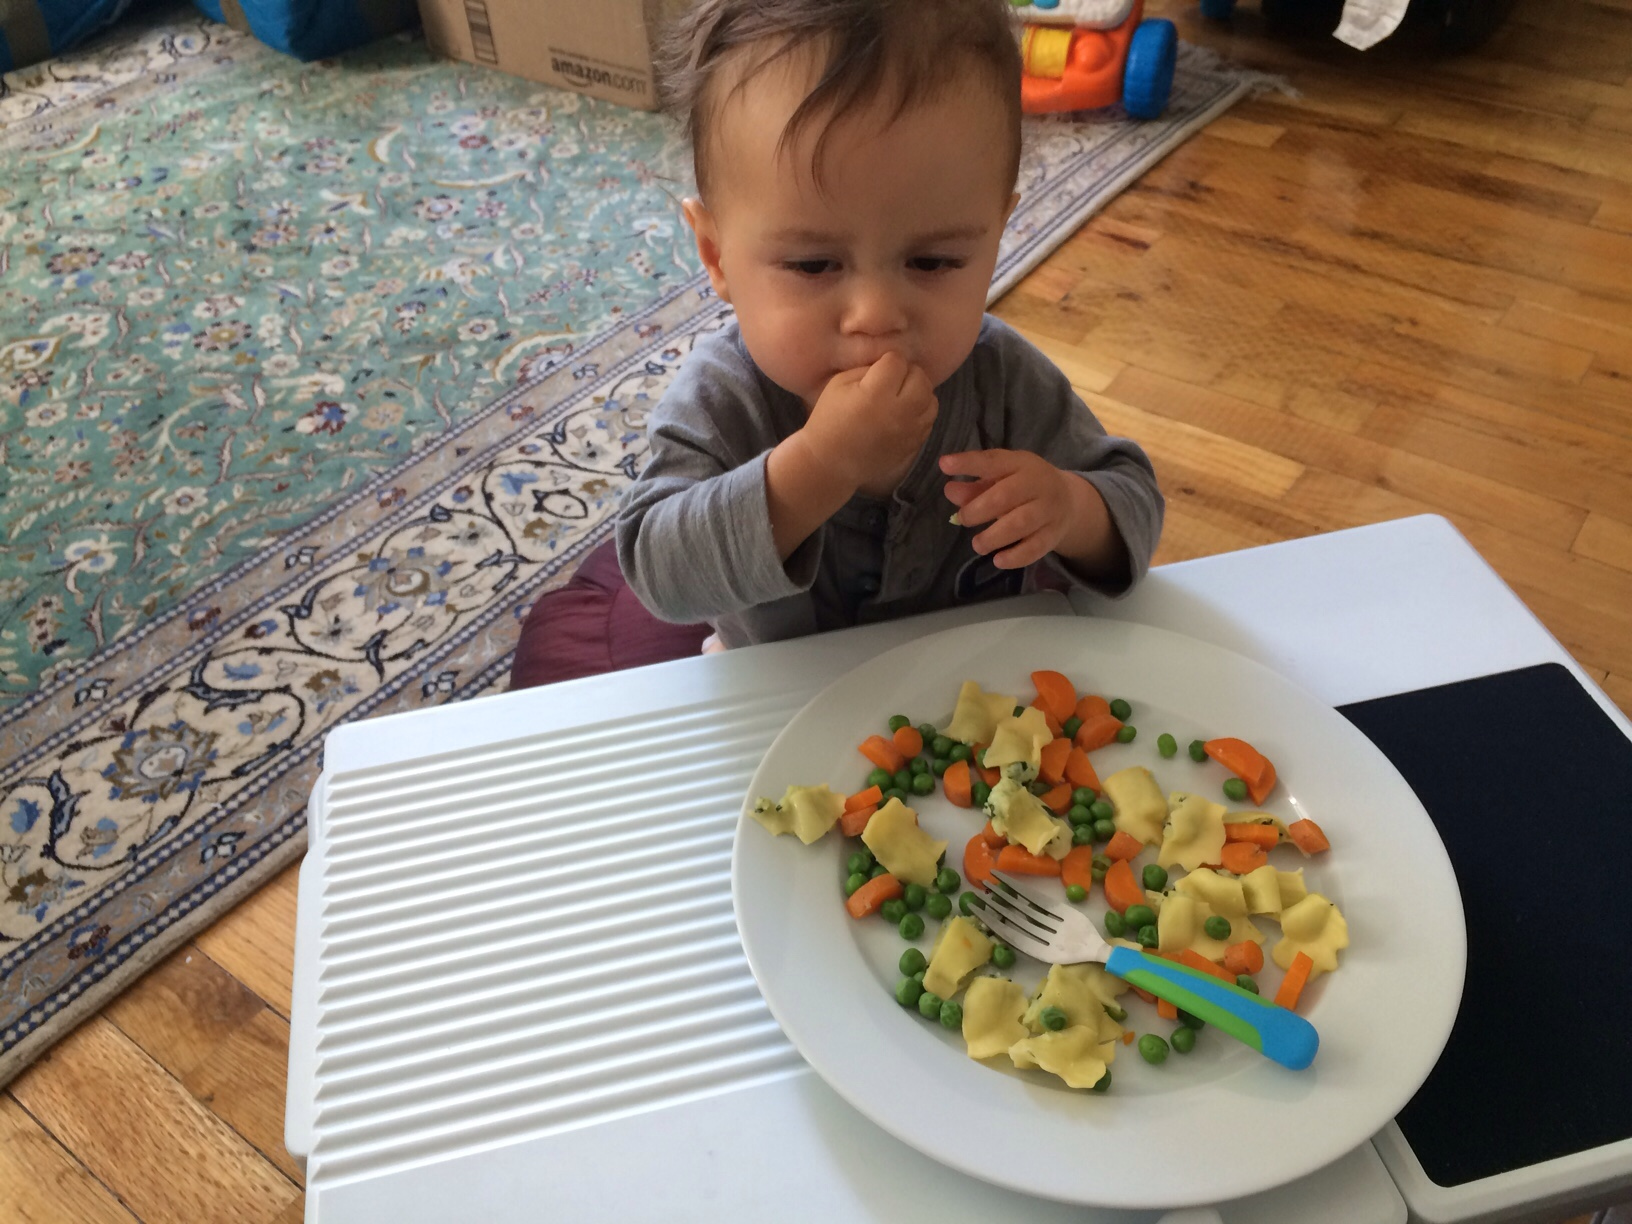 Baby boy o eating large plate of pasta